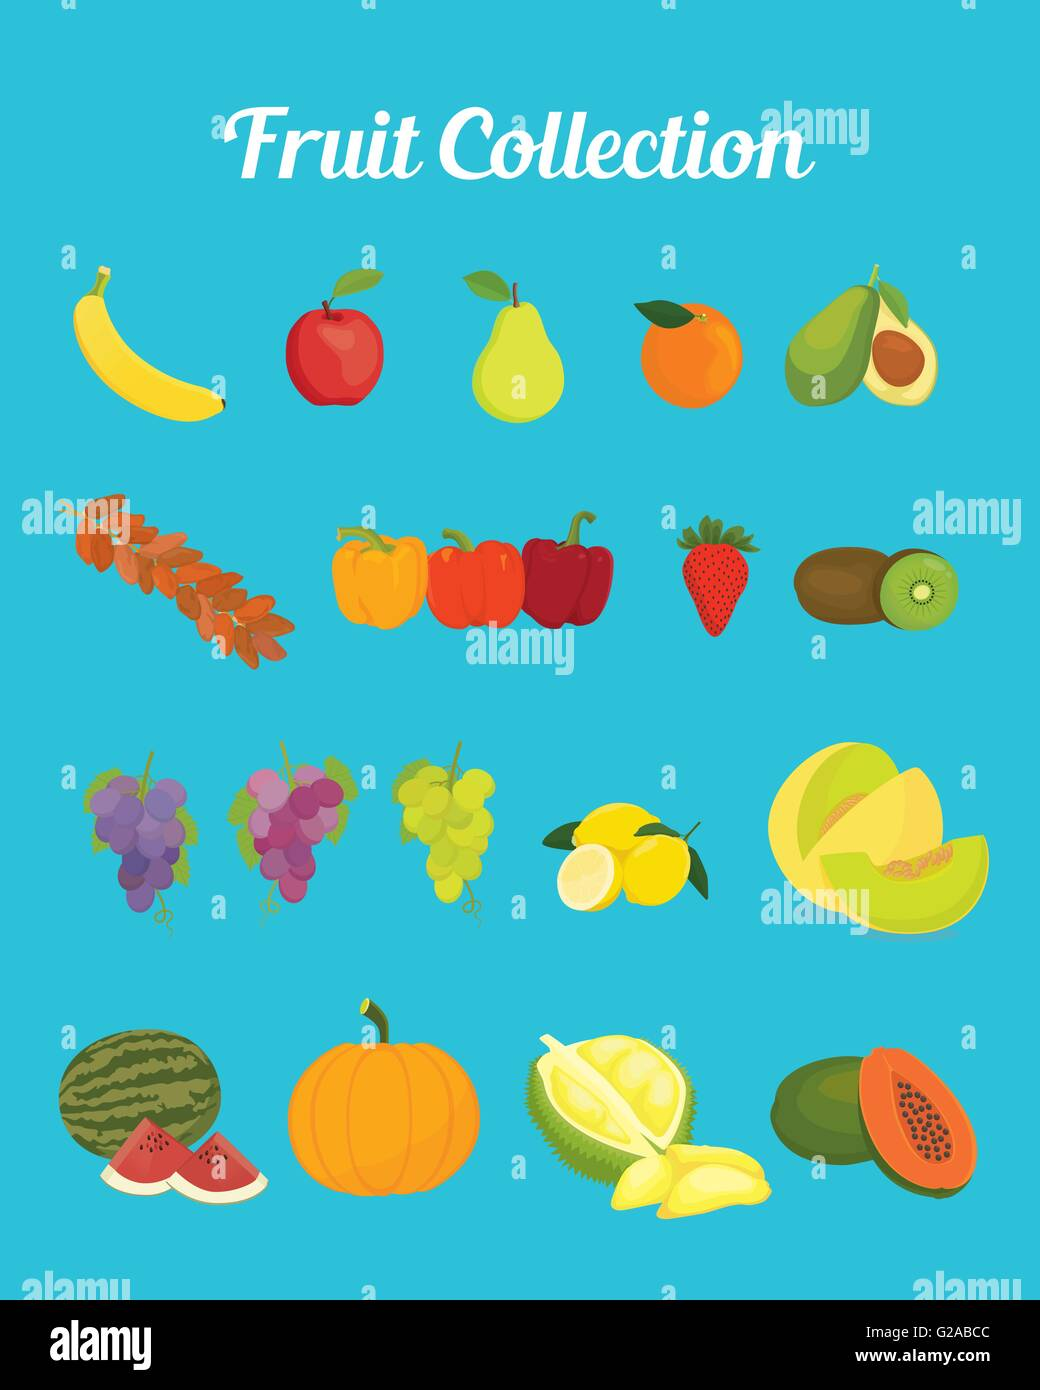 fruit collection images with bright color vector graphic - Stock Vector